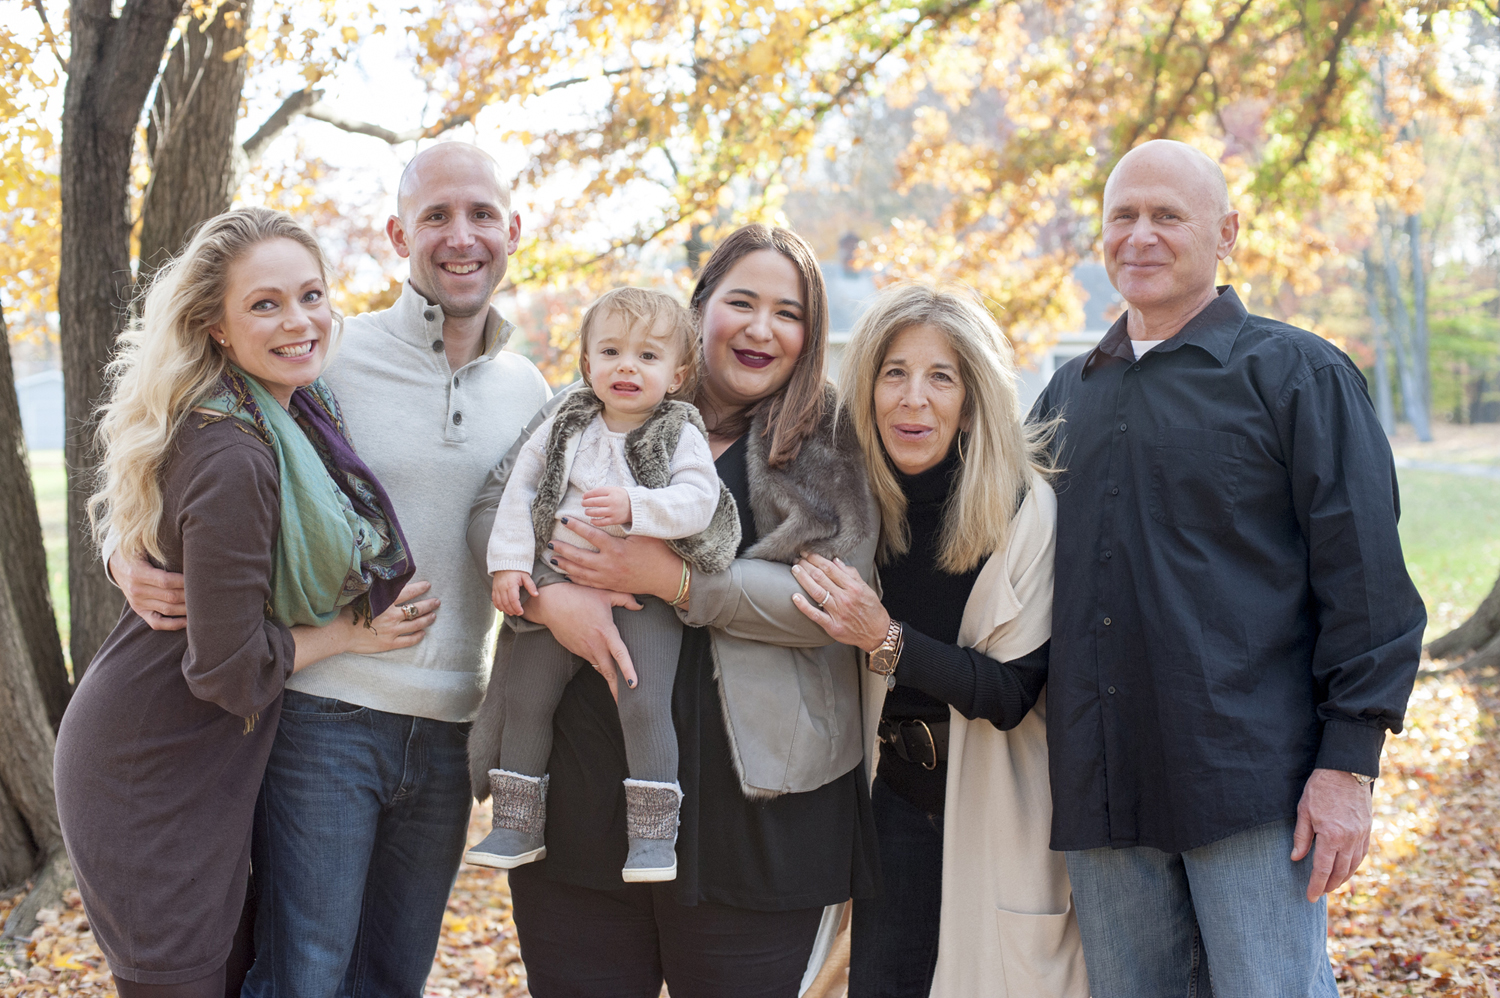 NJ family portrait photographer